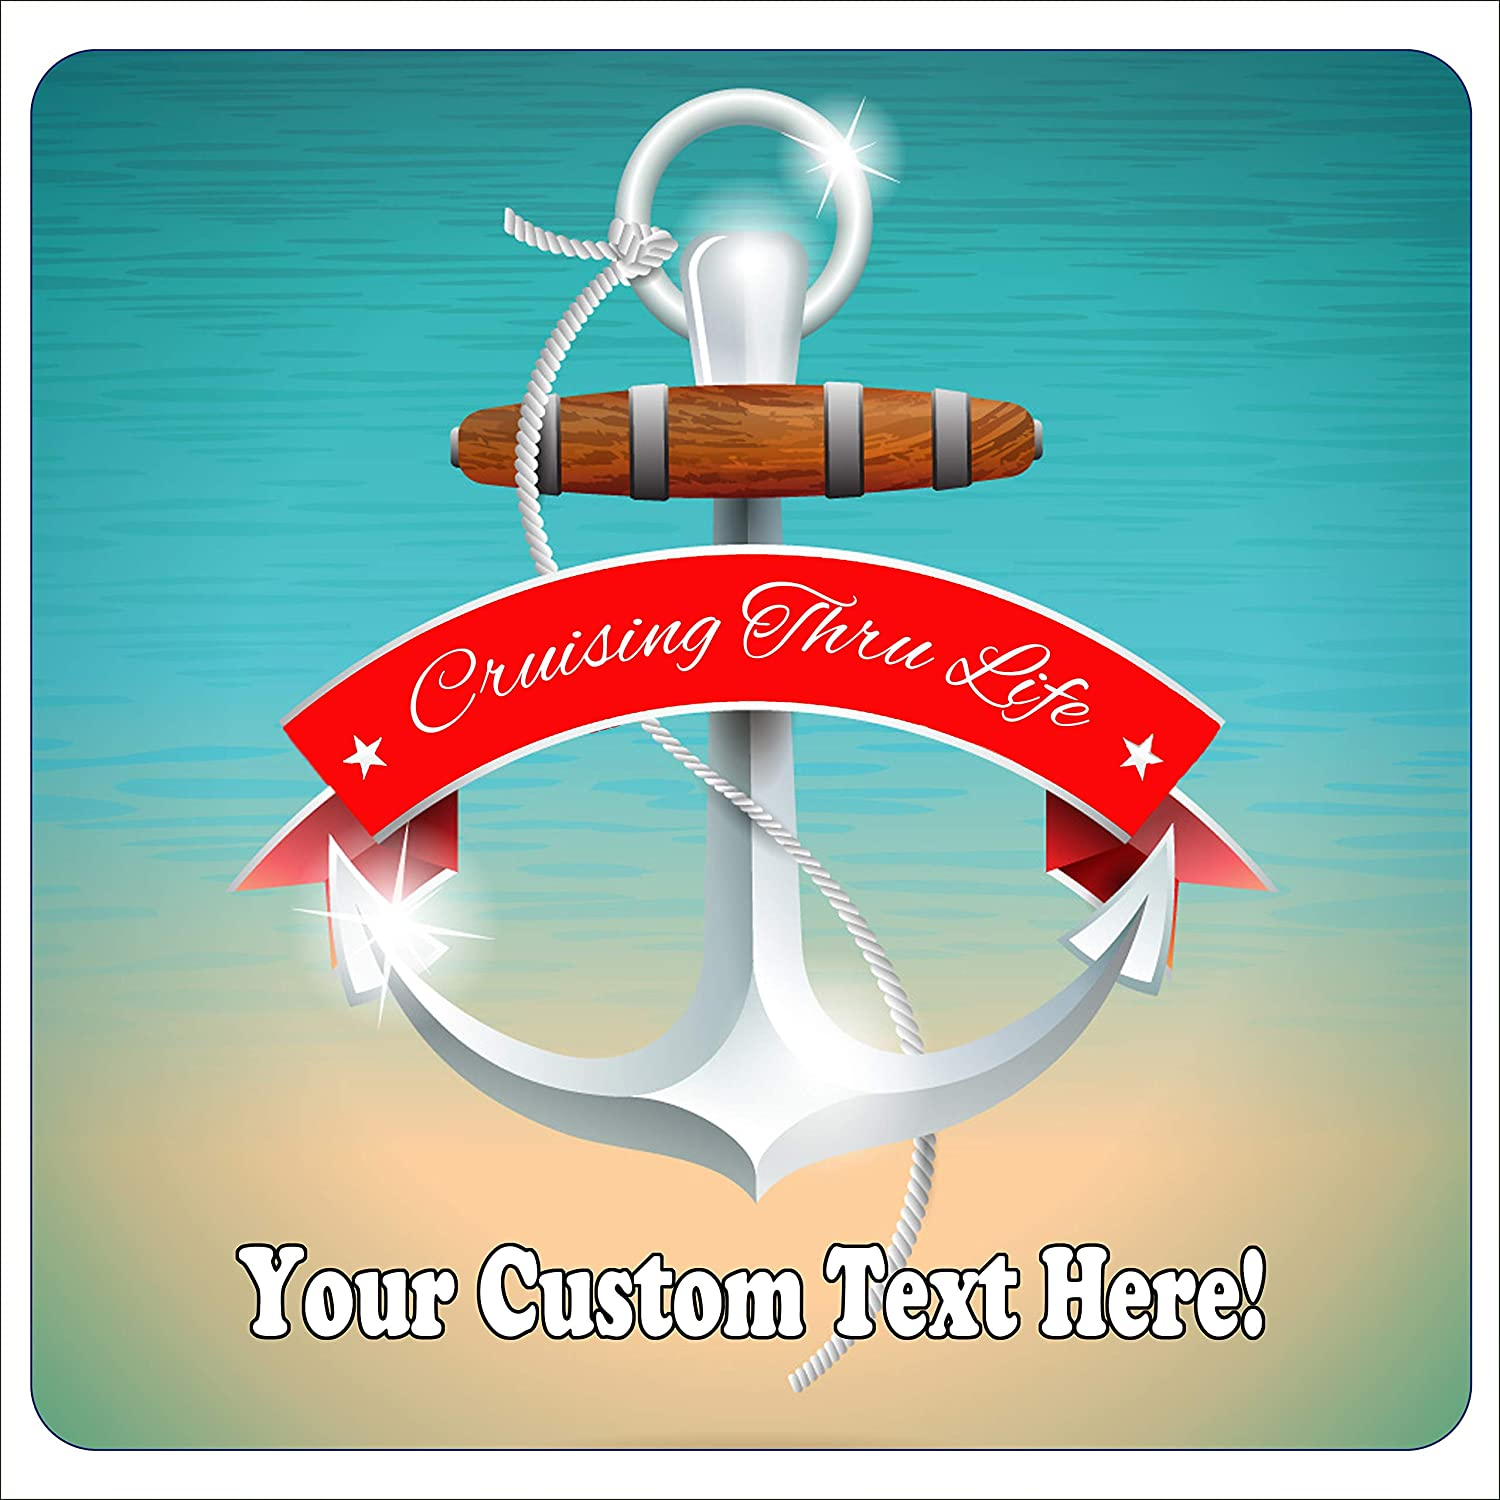 Cruise theme magnet. Customizable Many popular brands for unique decora a Phoenix Mall cabin door